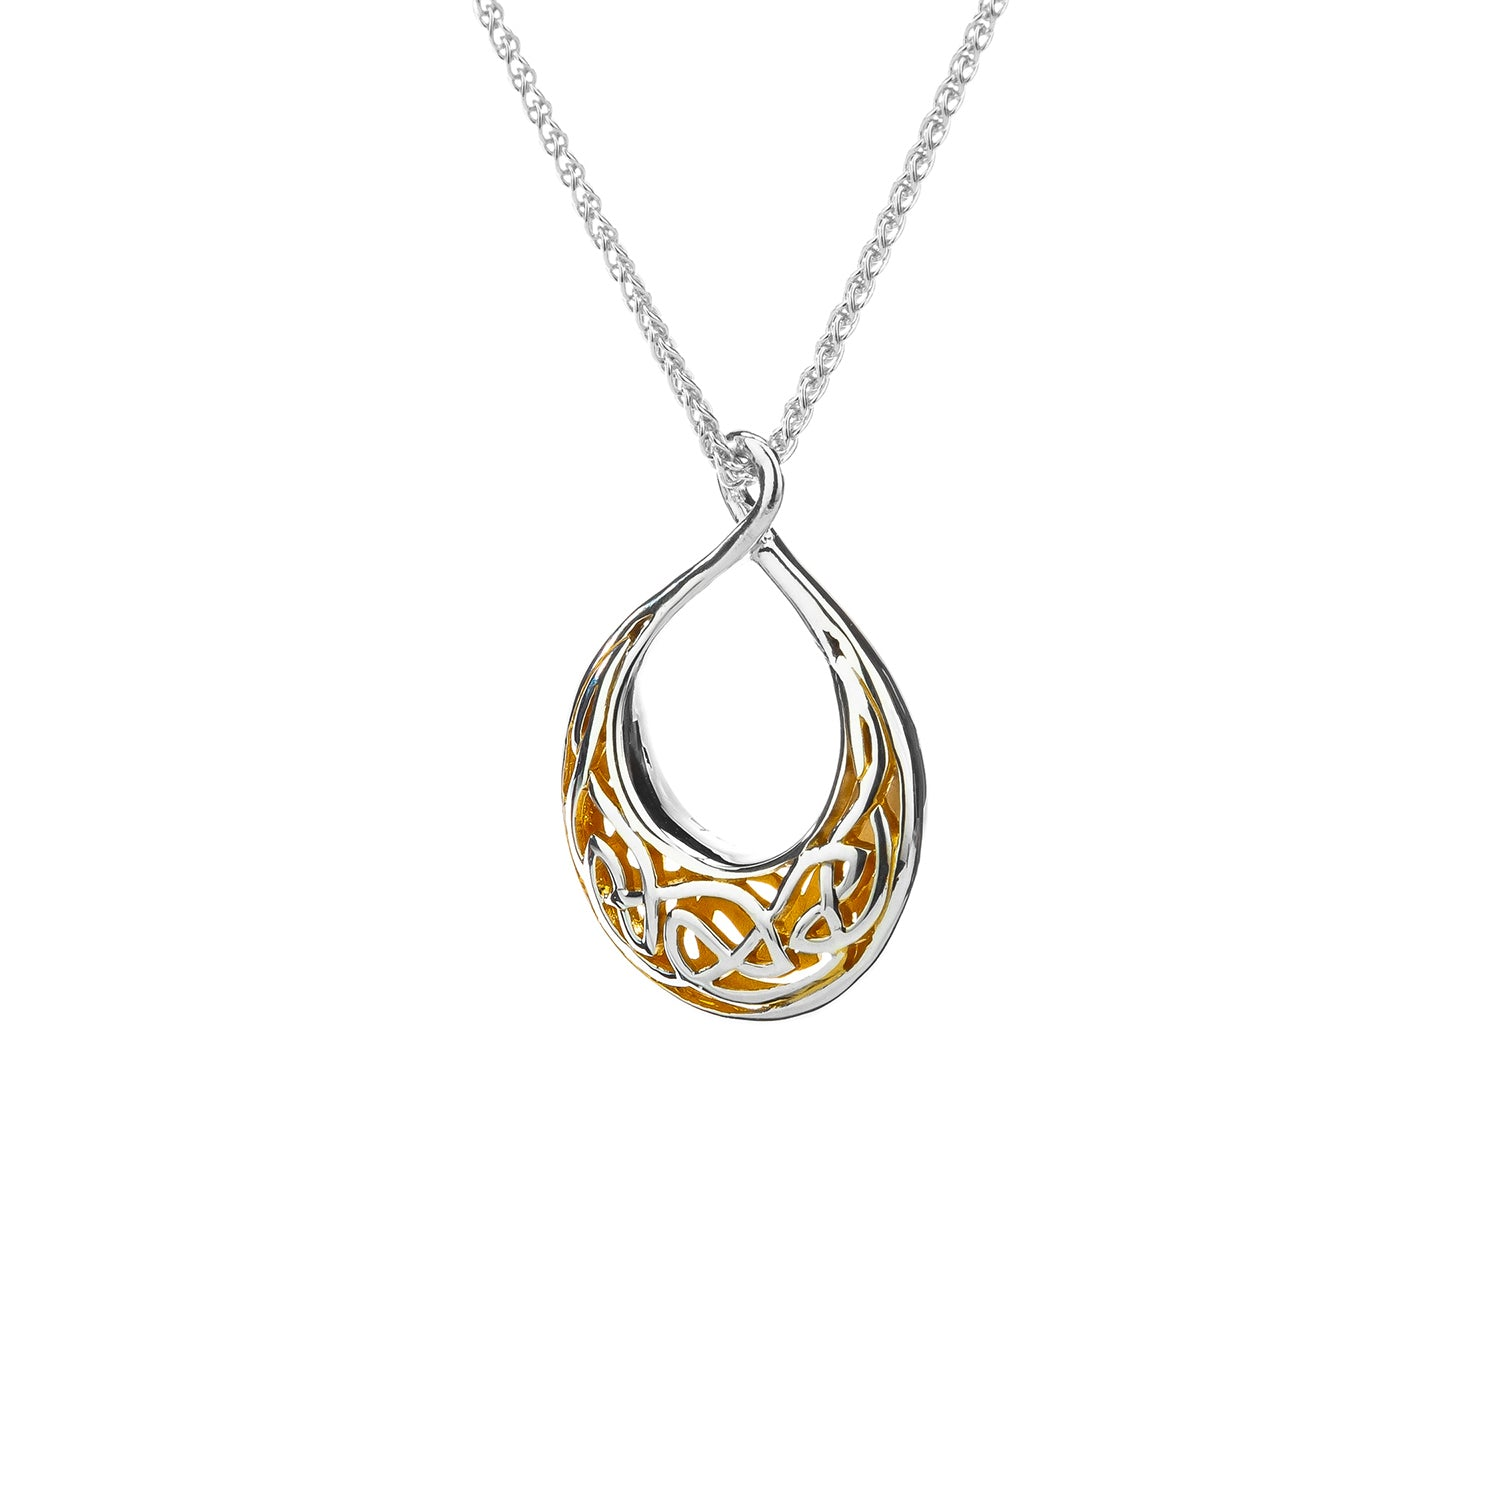 Pendant S/Sil 22k Gilded Window to the Soul Small Teardrop Pendant from welch and company jewelers near syracuse ny